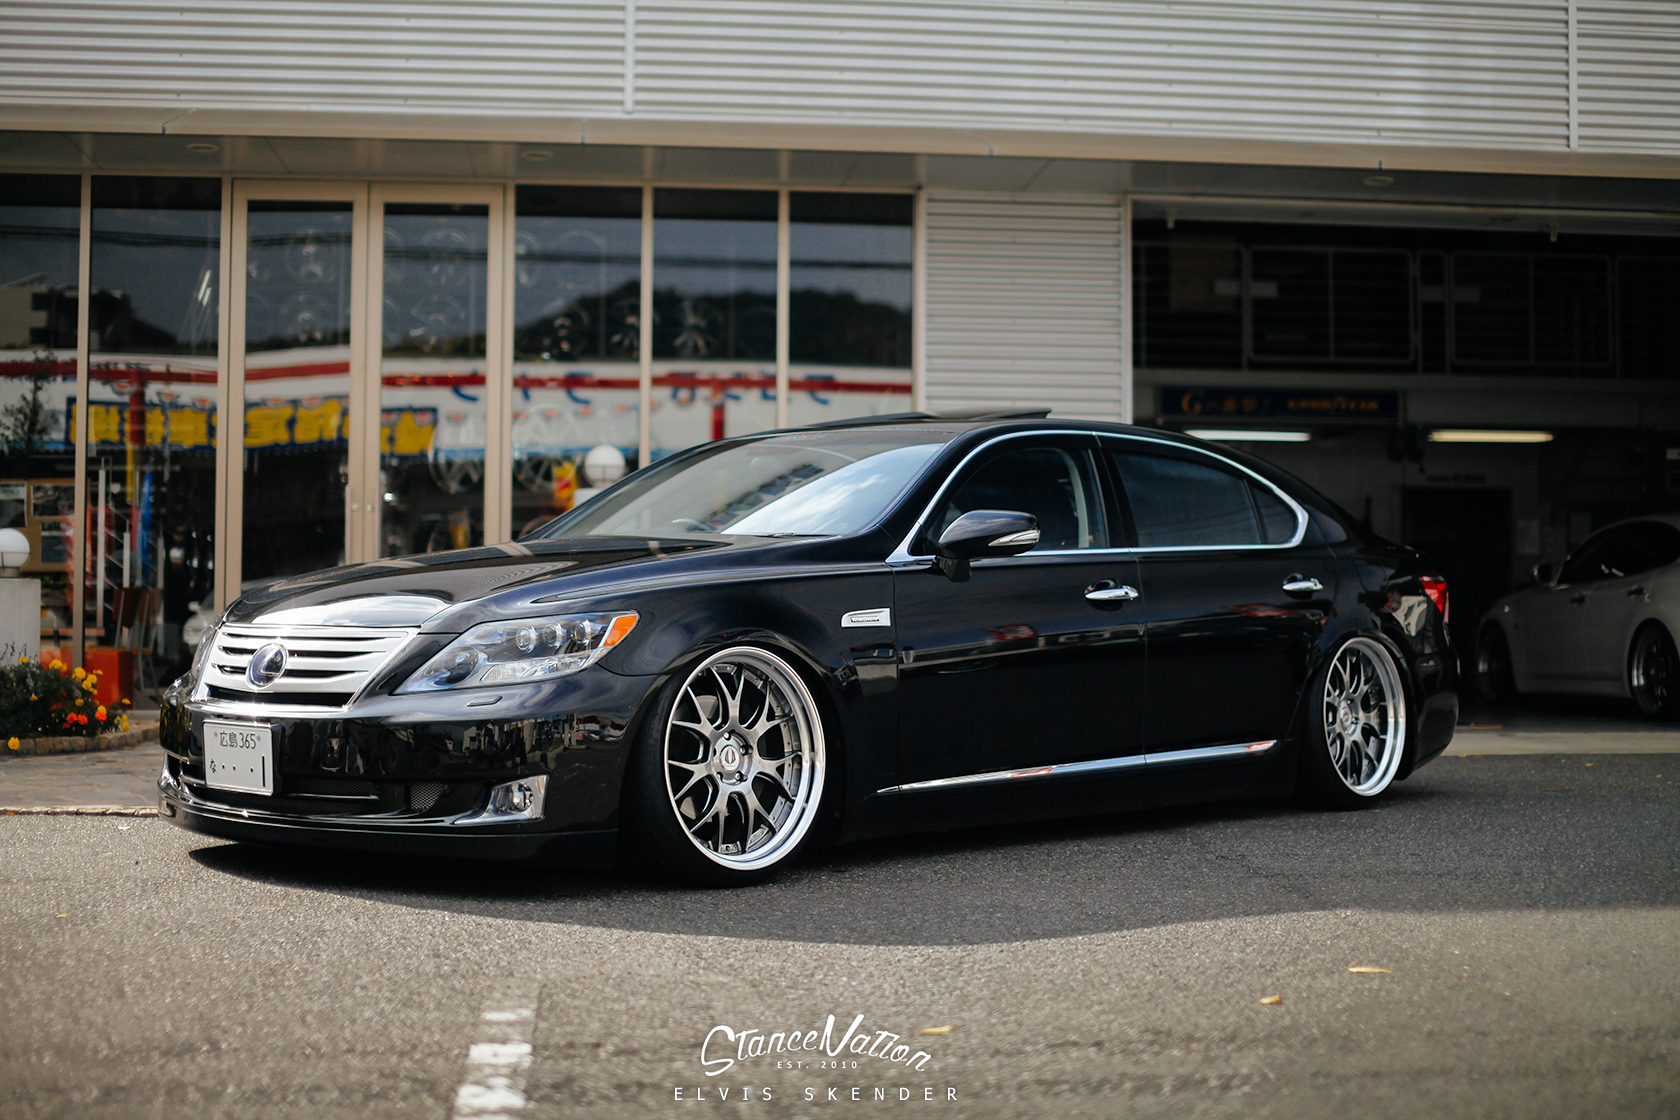 2008 Lexus Is350 Custom >> A Closer Look At Aimgain Japan // The LS460L. | StanceNation™ // Form > Function